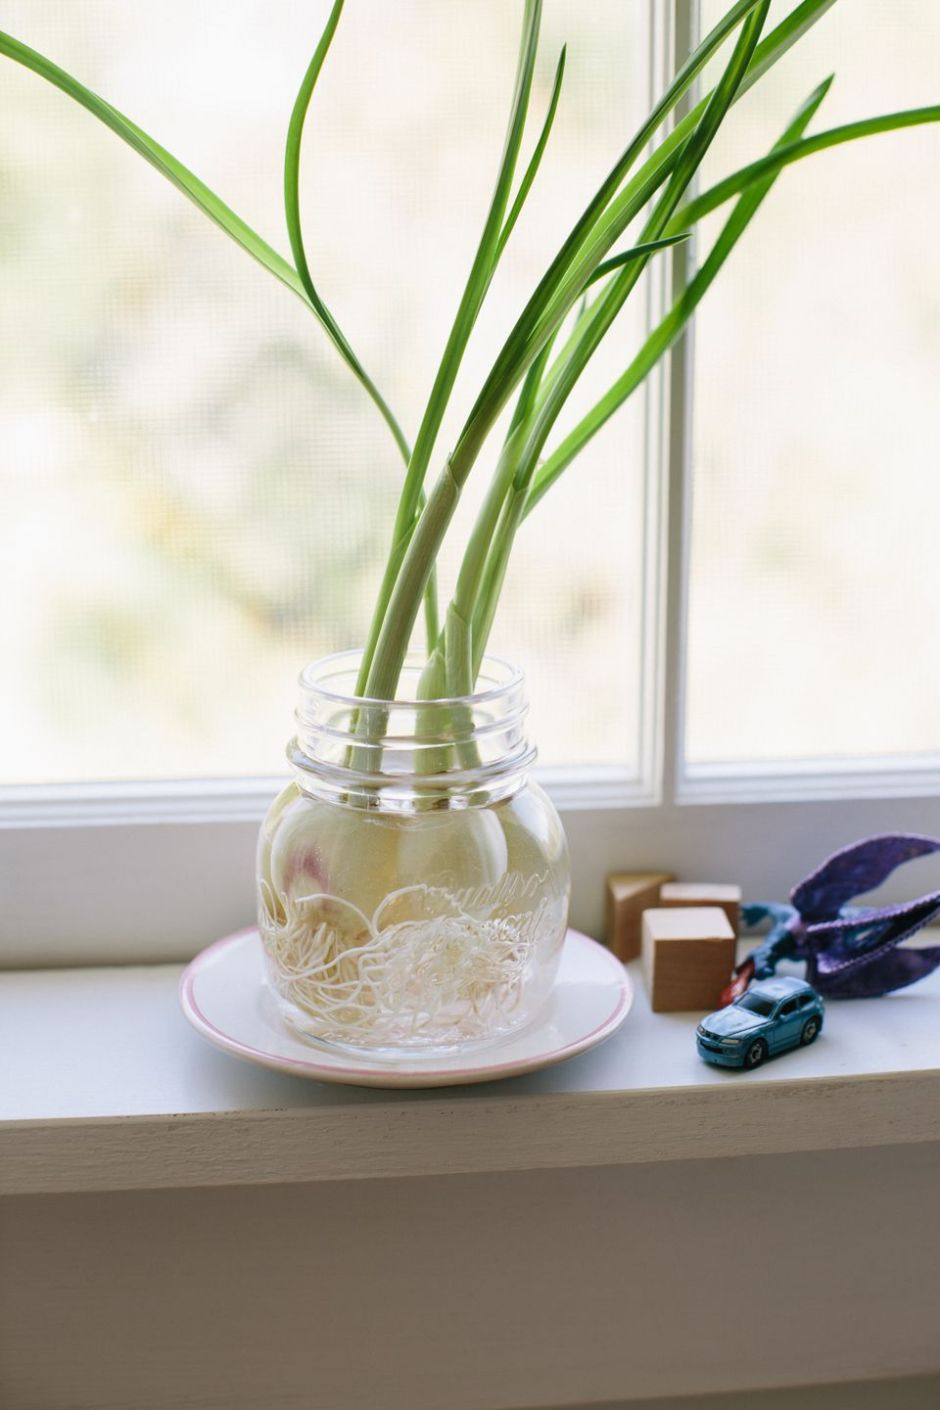 Garlic plant grown indoors in jar